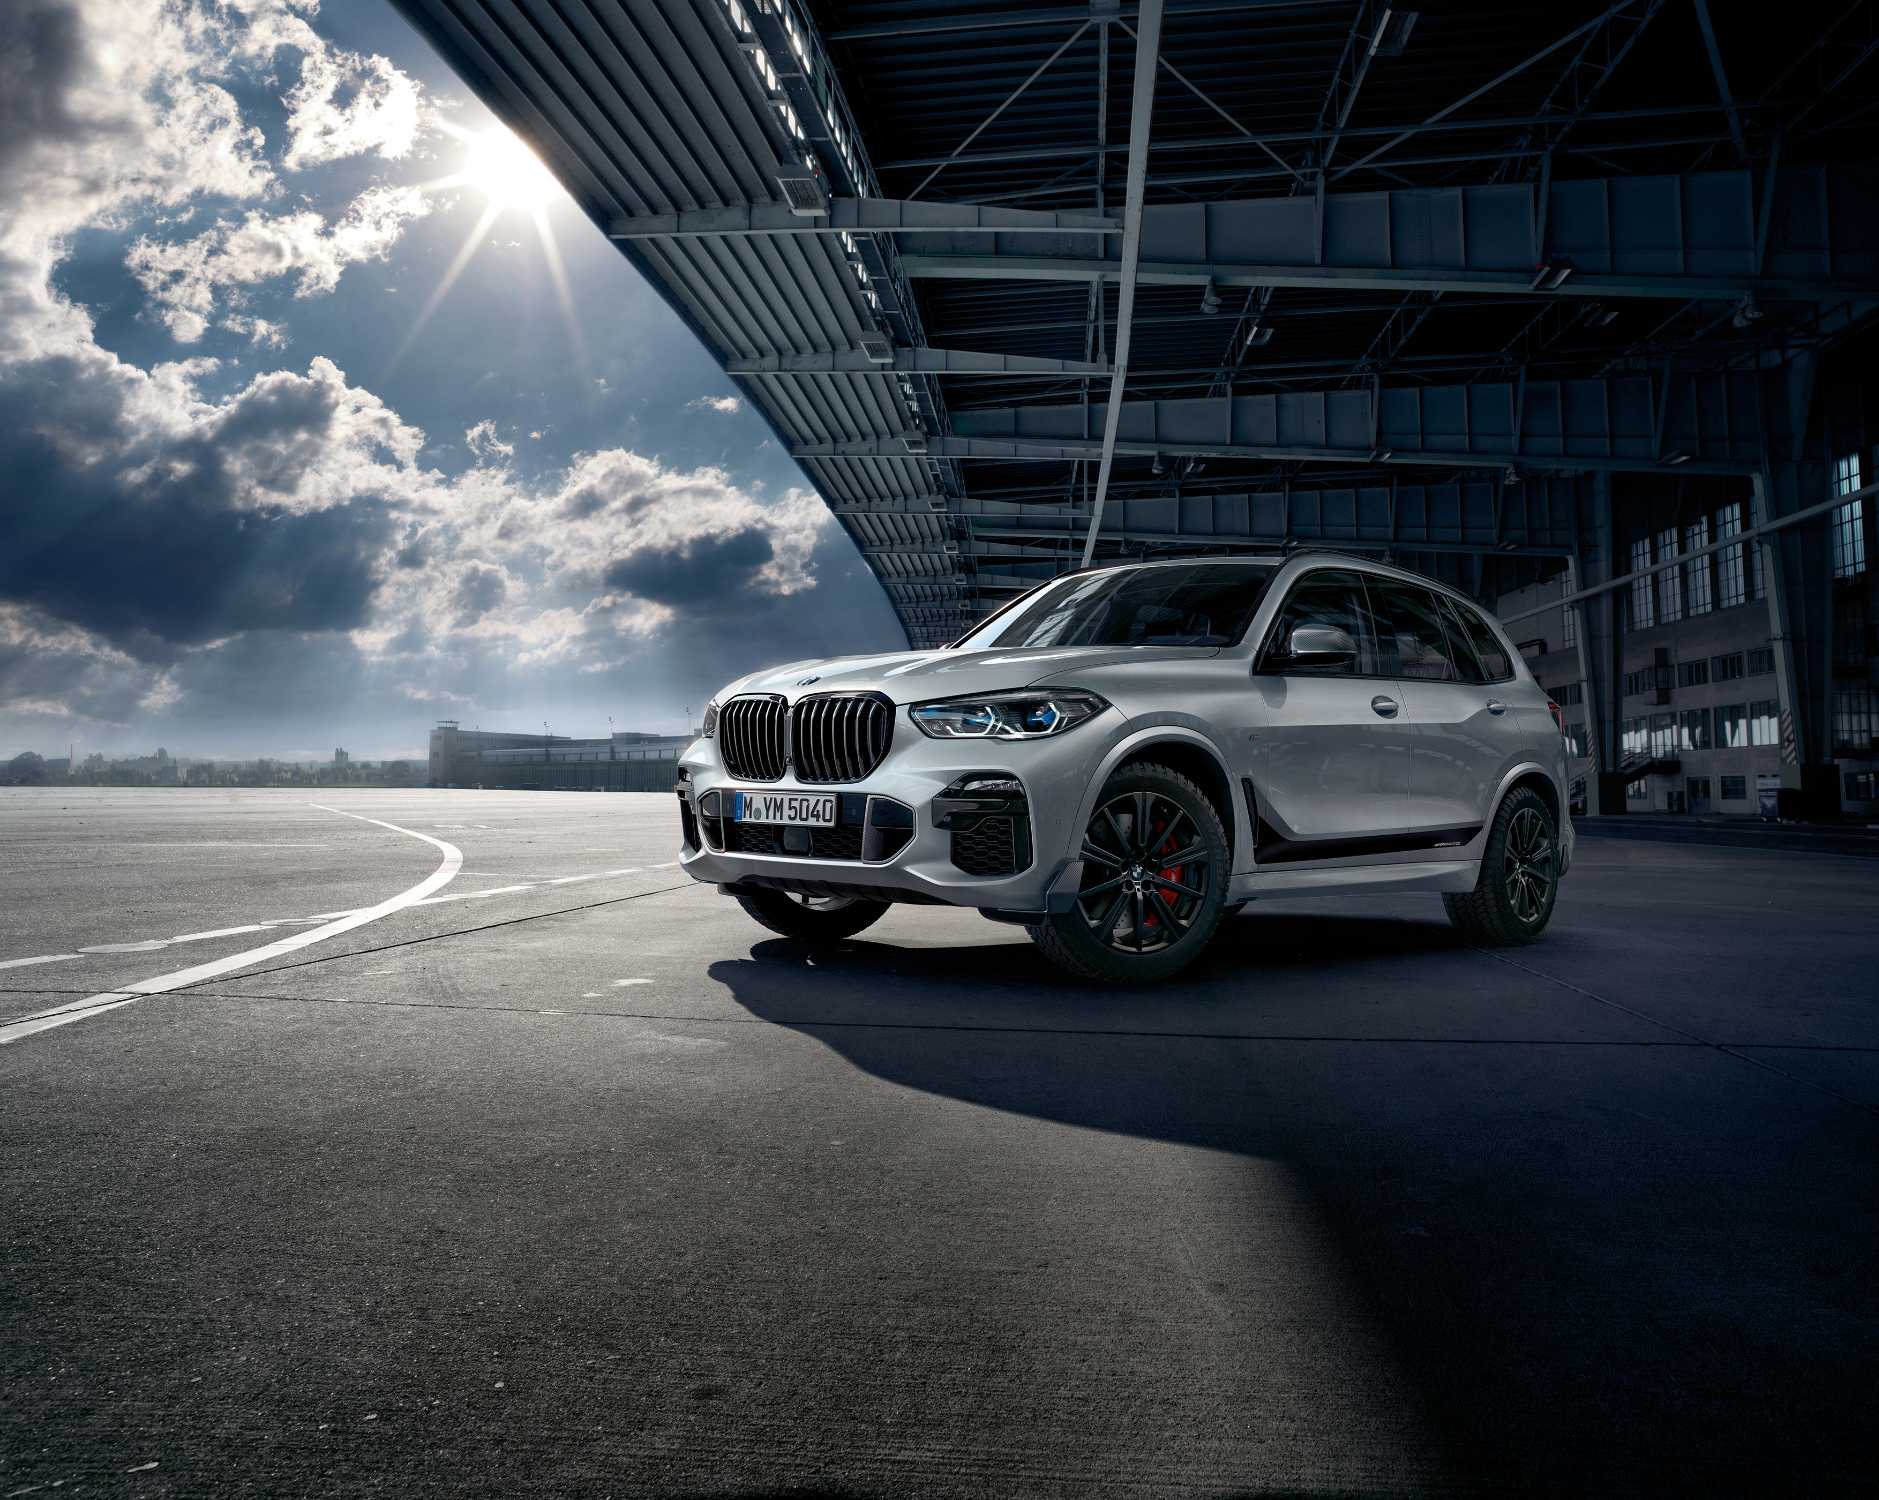 Nieuw The new BMW X5 with M Performance Parts. TR-76